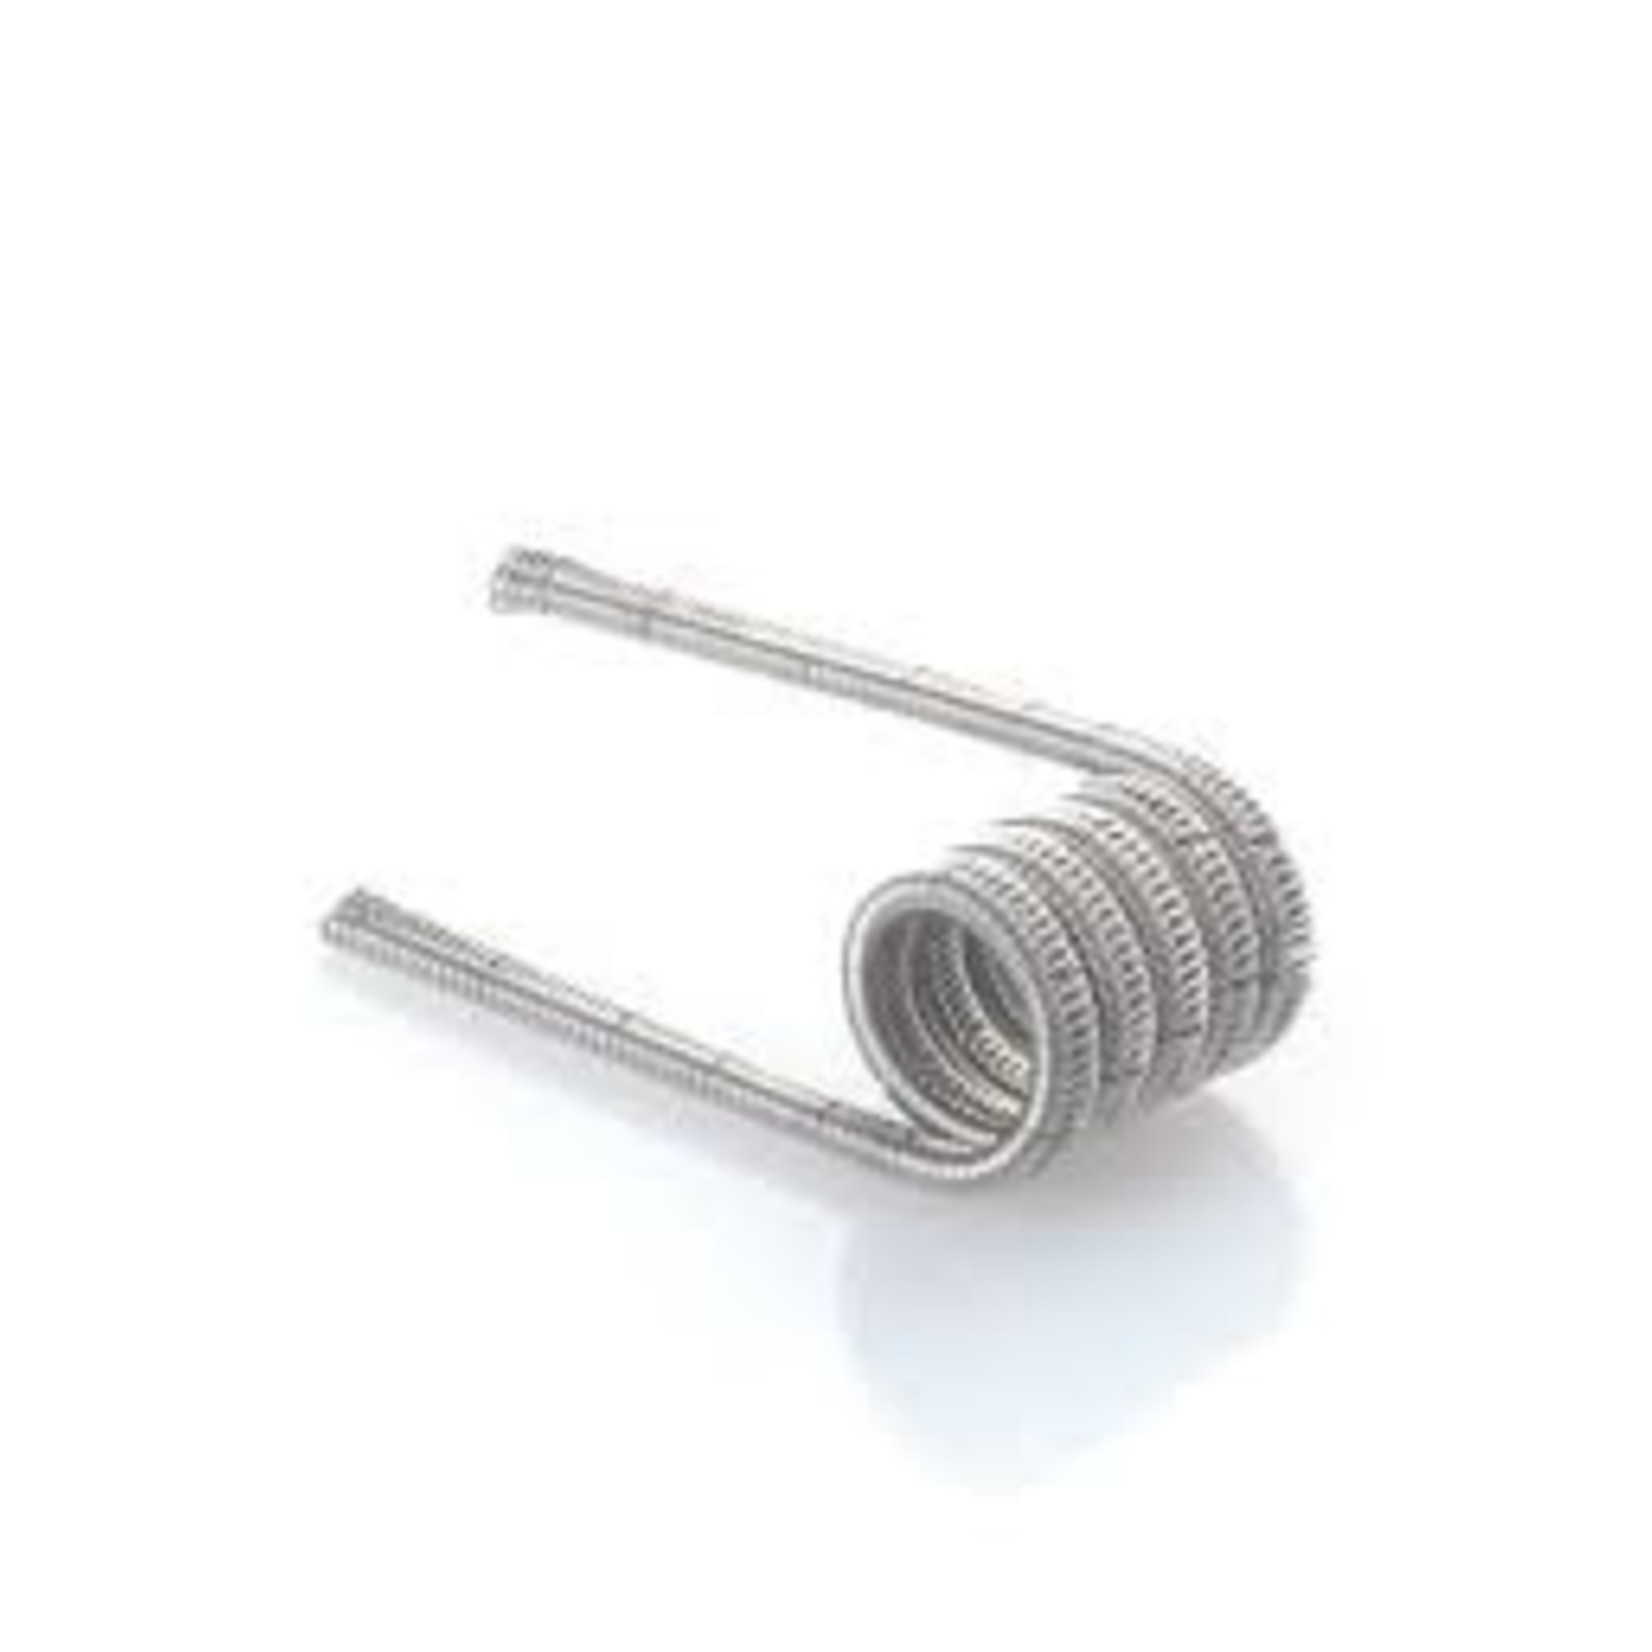 Gold Label Claptons